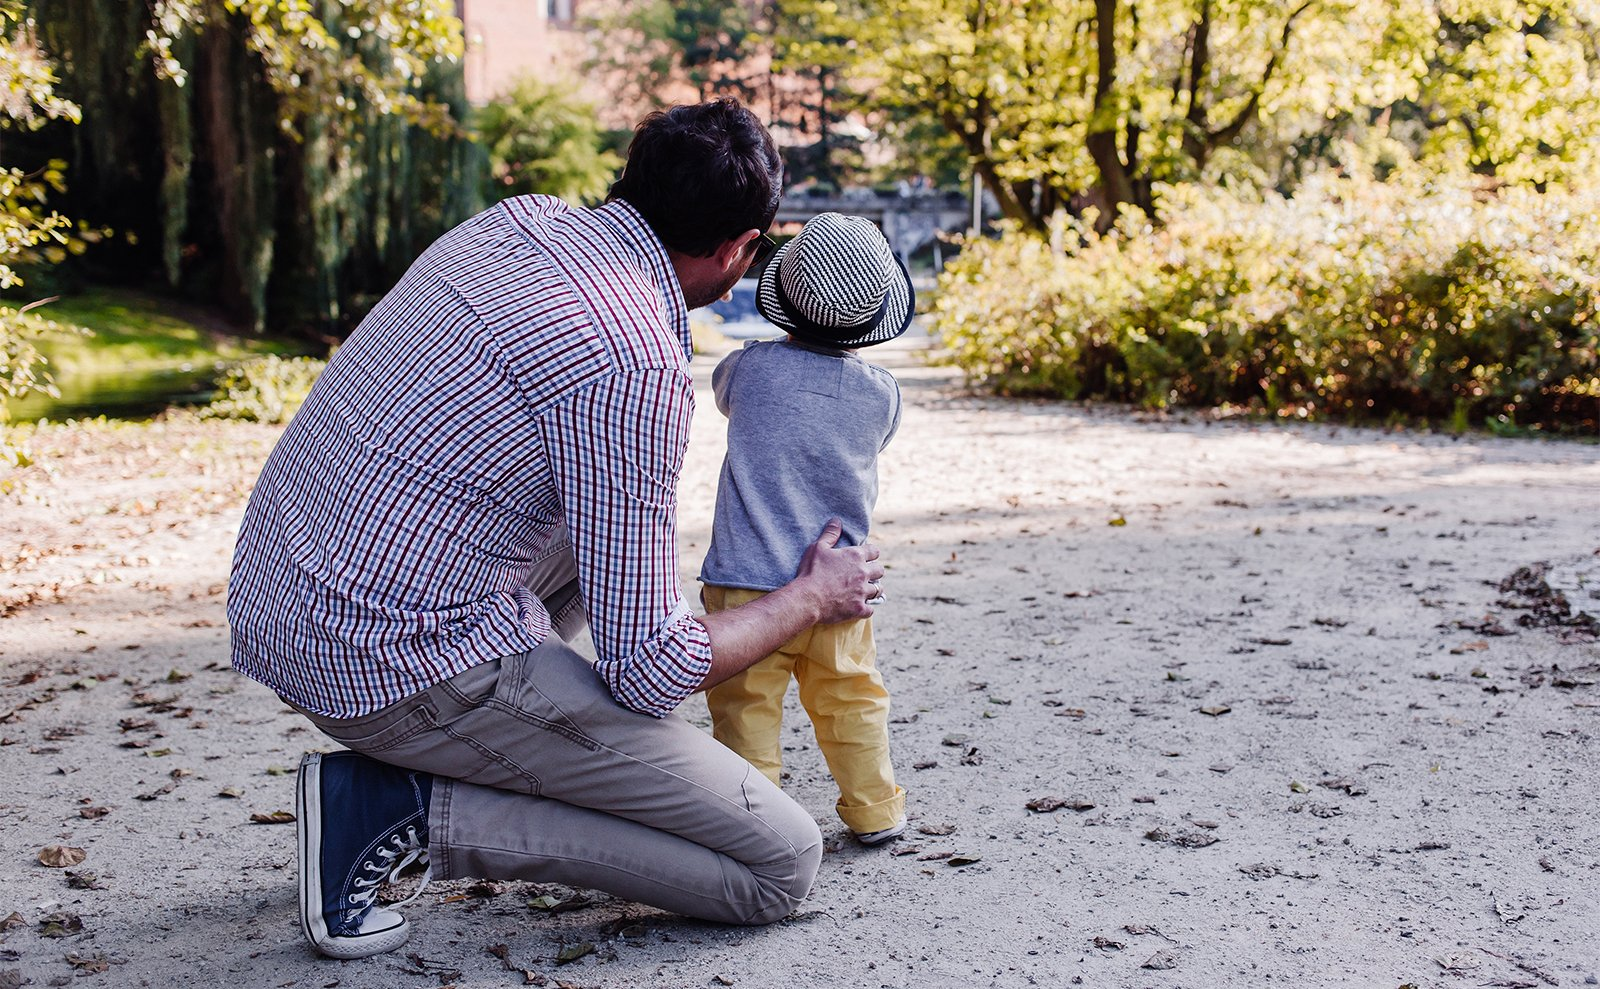 A father and child. Photo courtesy of Pixabay/Creative Commons